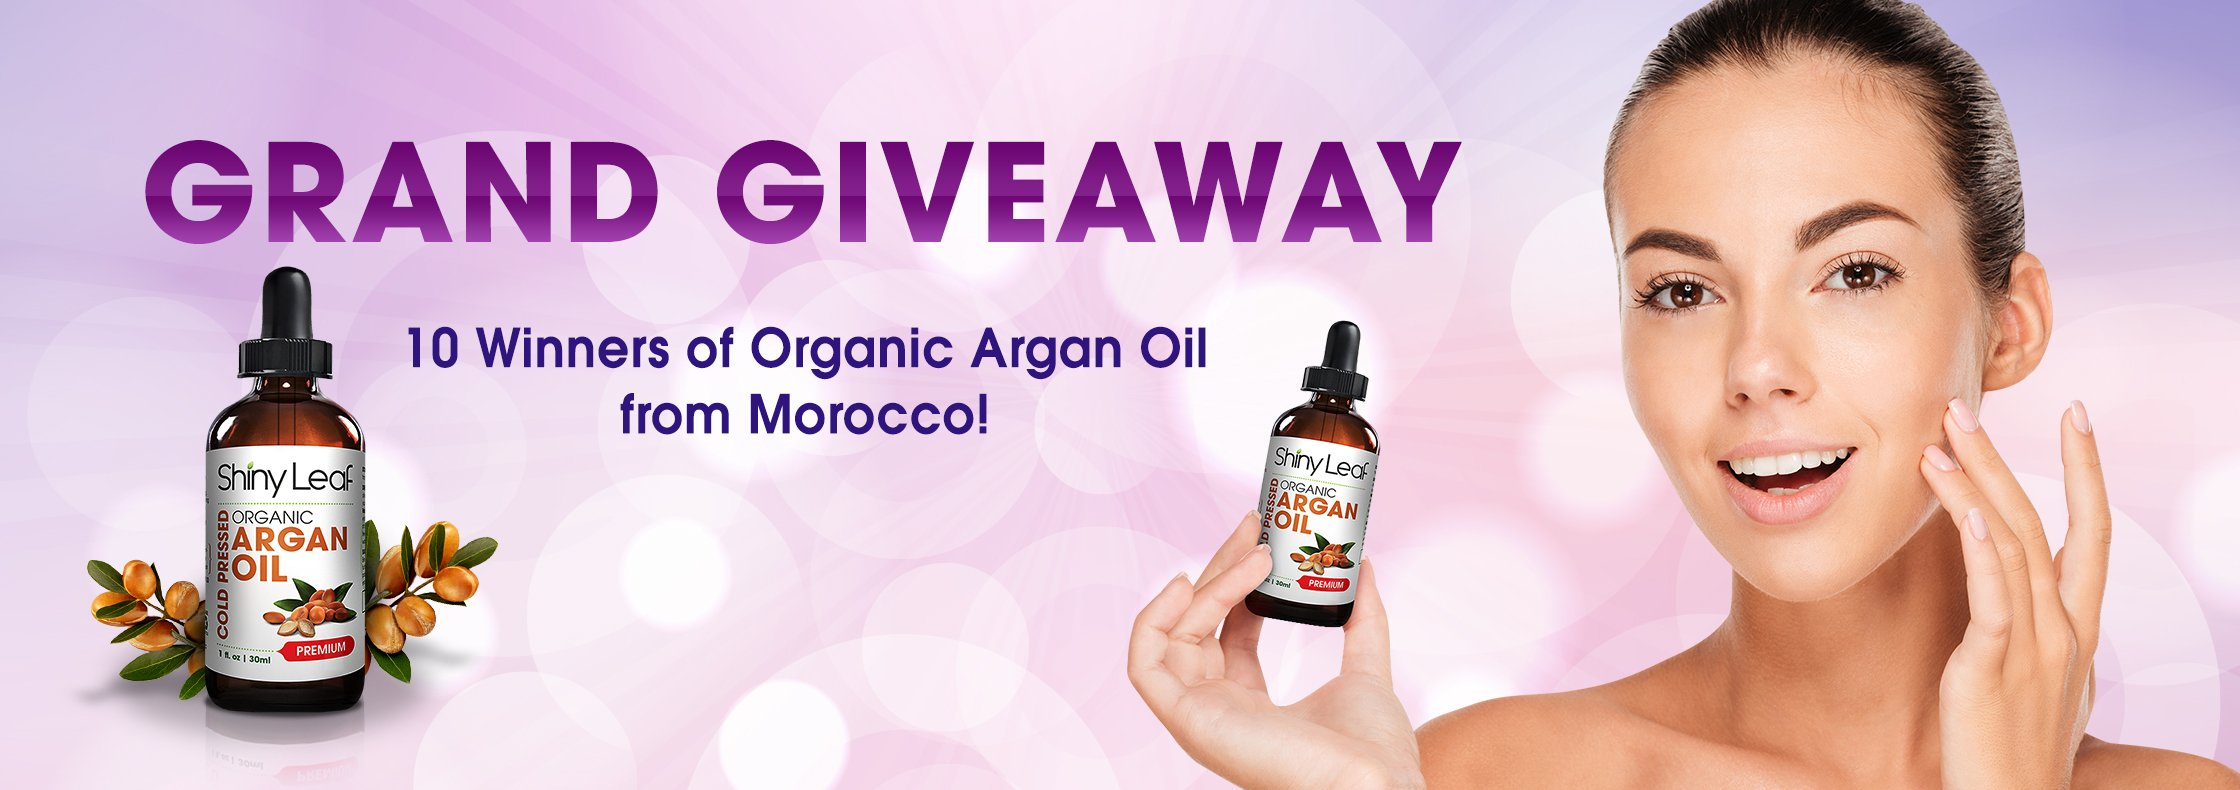 Shiny Leaf Argan Oil Grand Giveaway Part 1